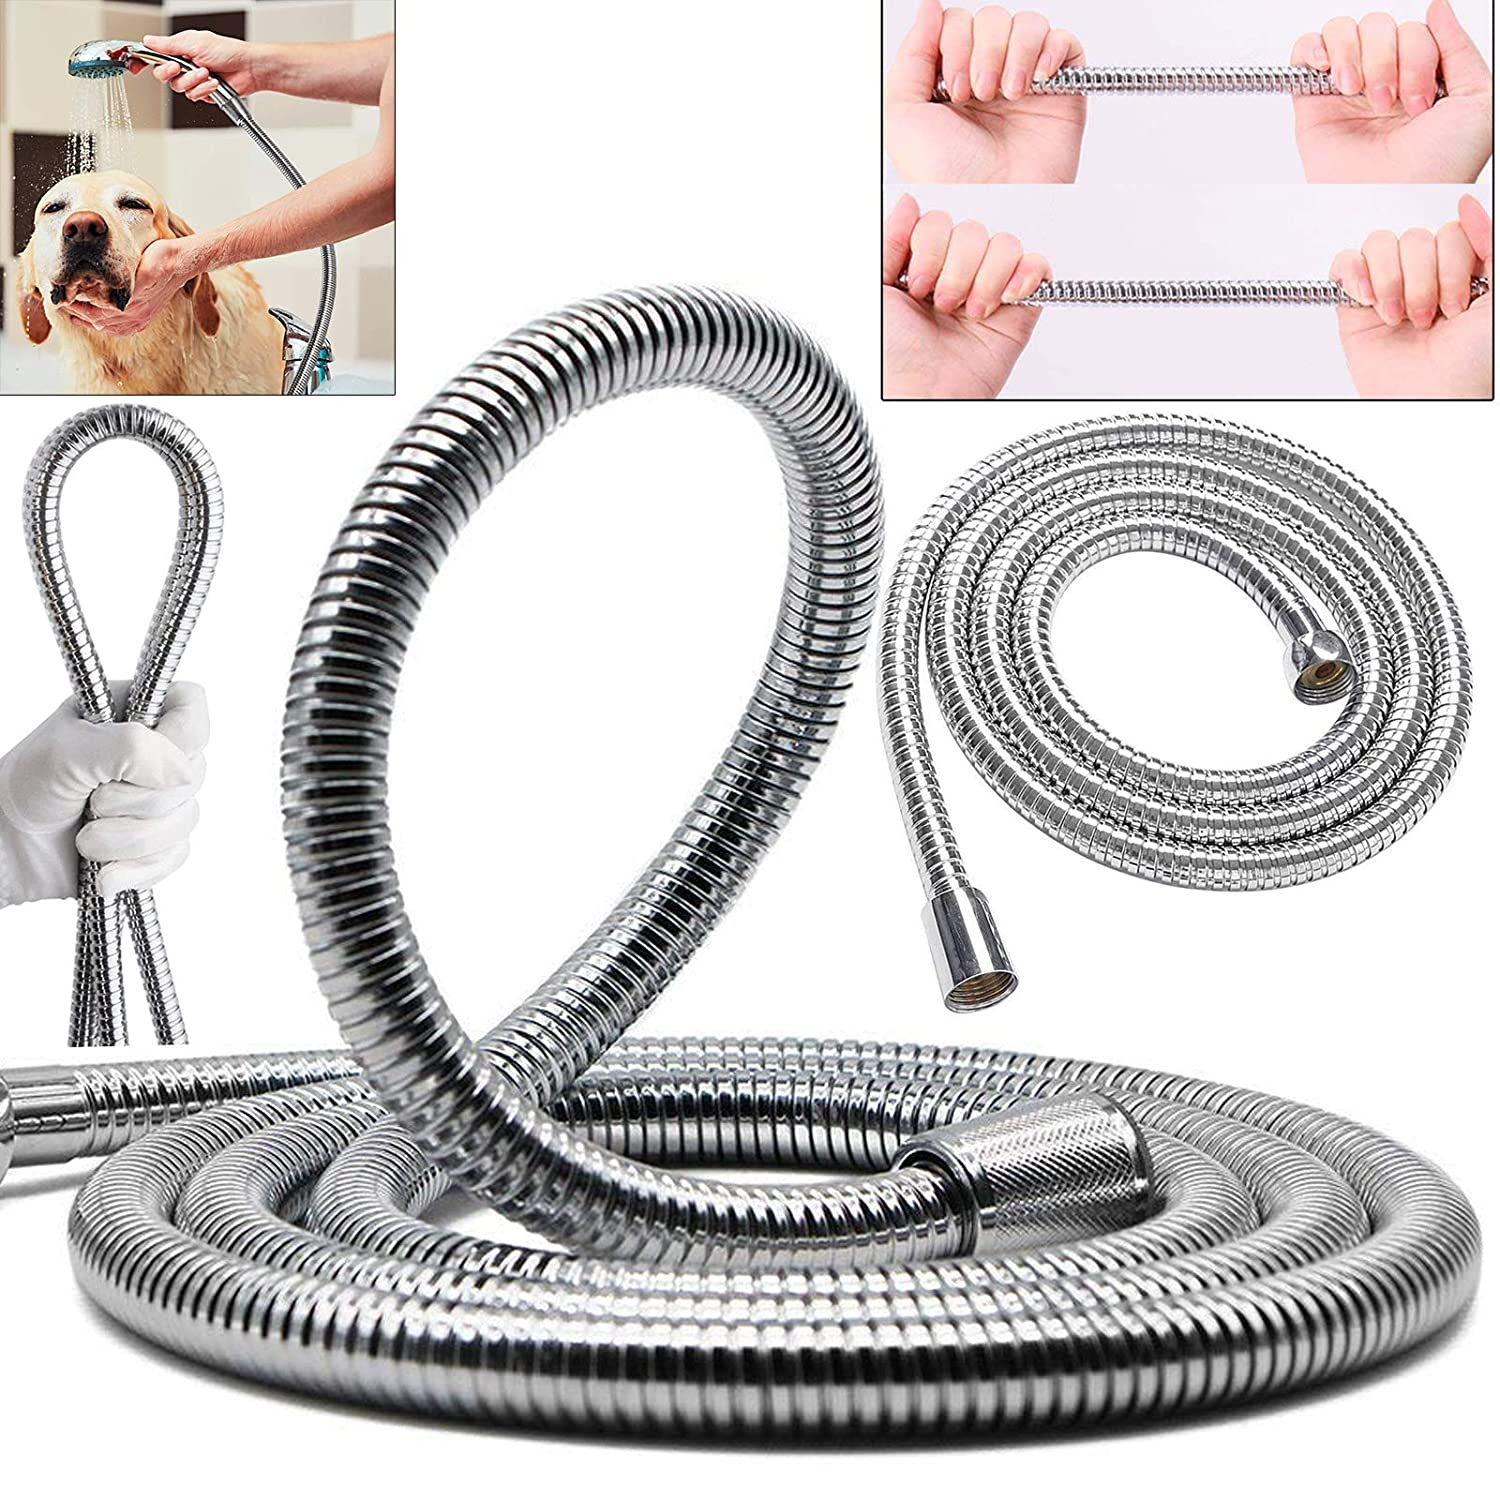 2.5M Stainless Steel Replacement Flexible Bathroom Bath Shower Hose Pipe Head Handheld With Washers Set Safekom